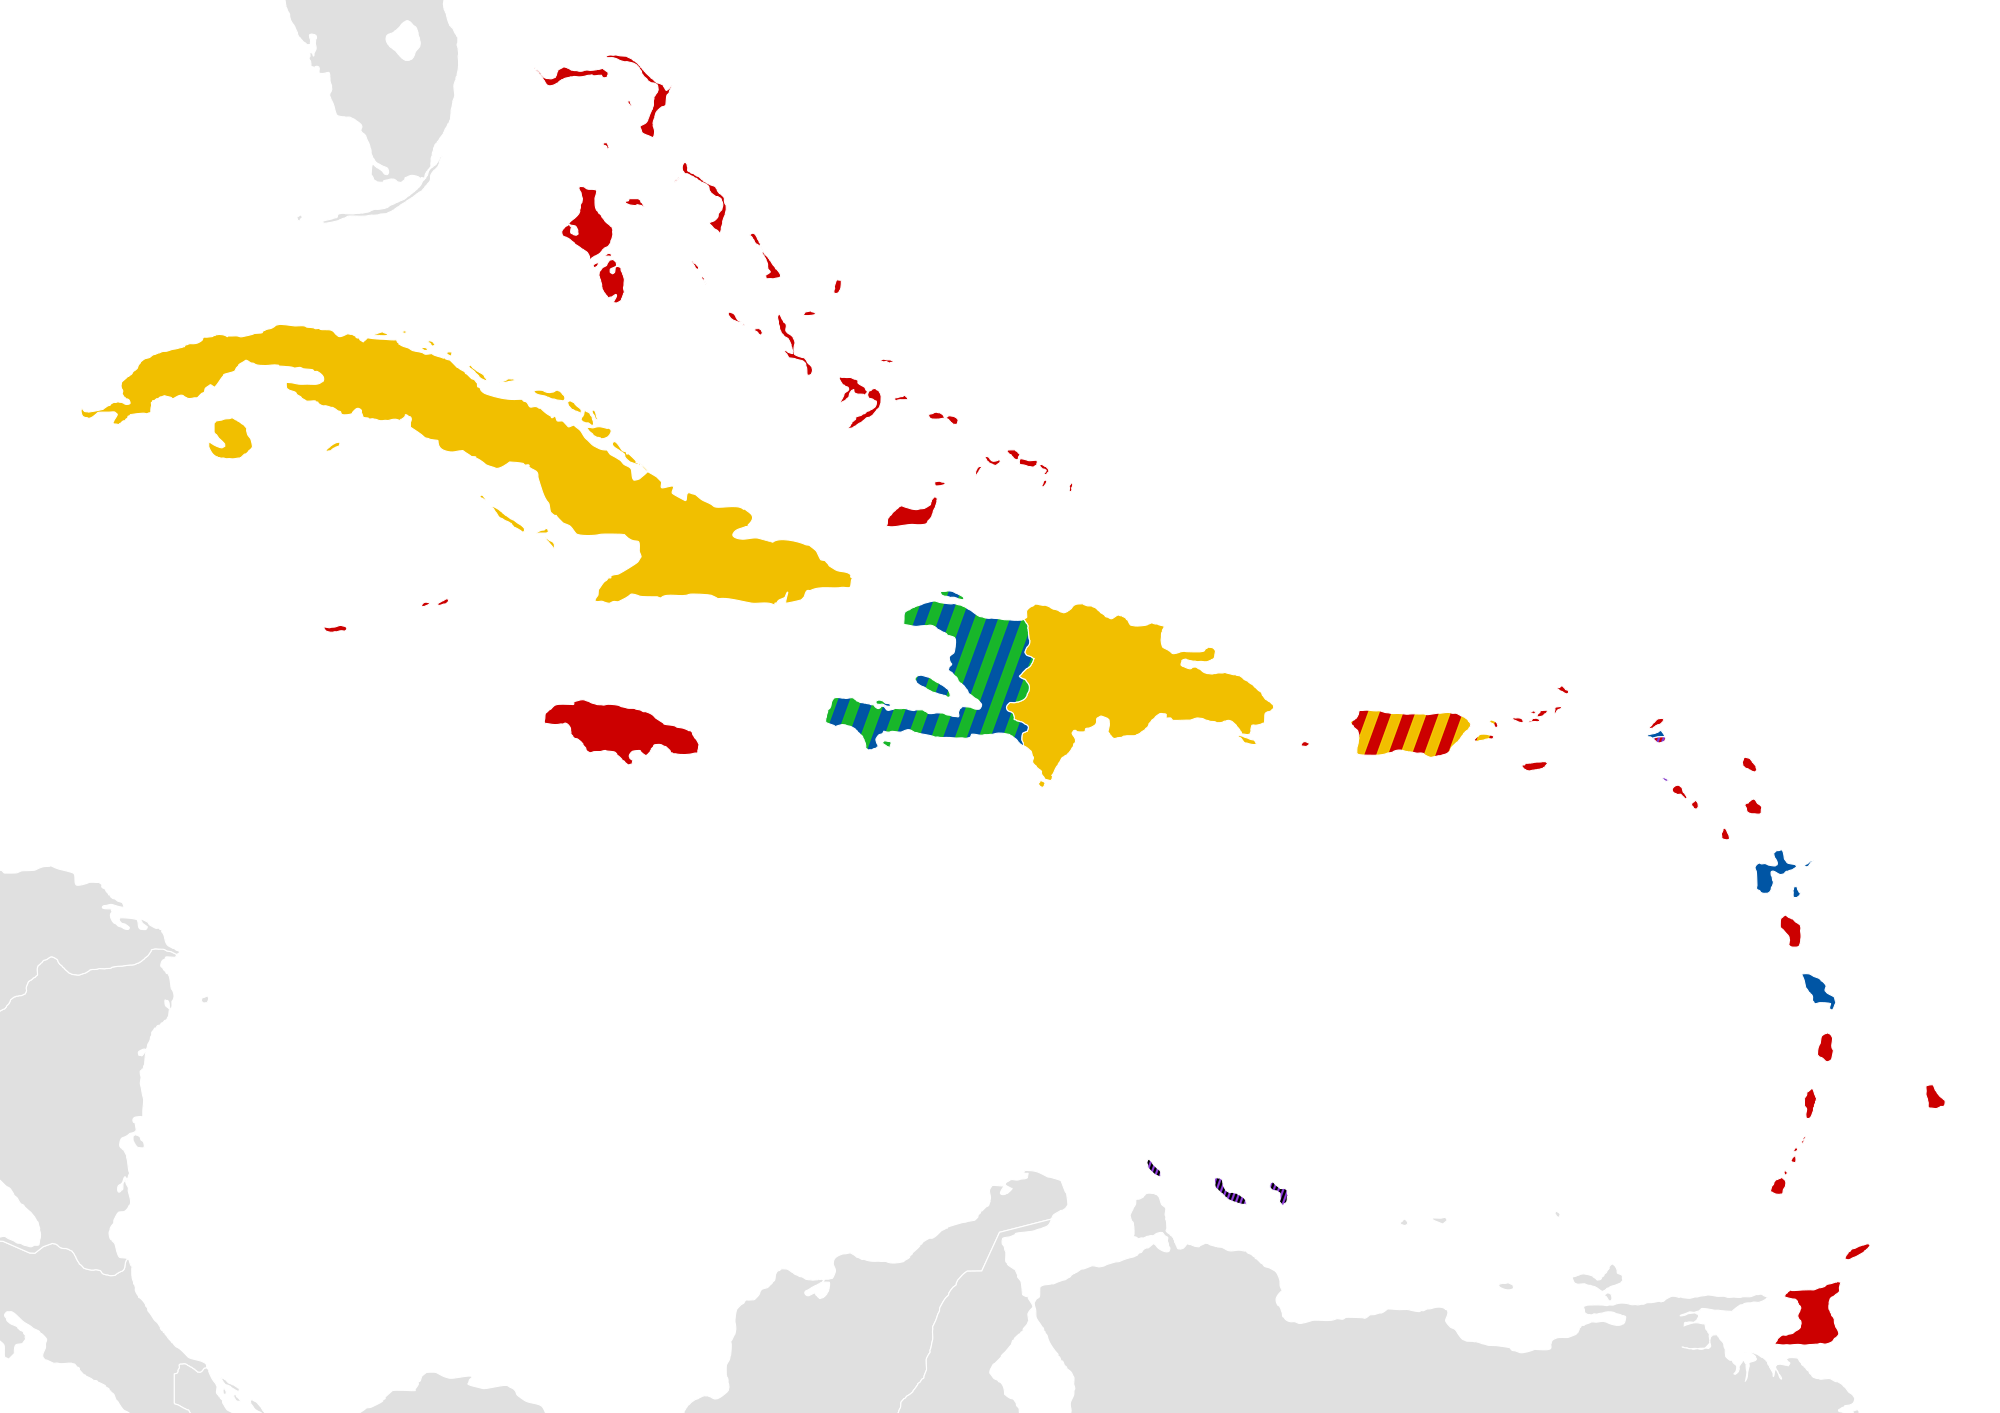 Jamaican drawing background image. Languages of the caribbean